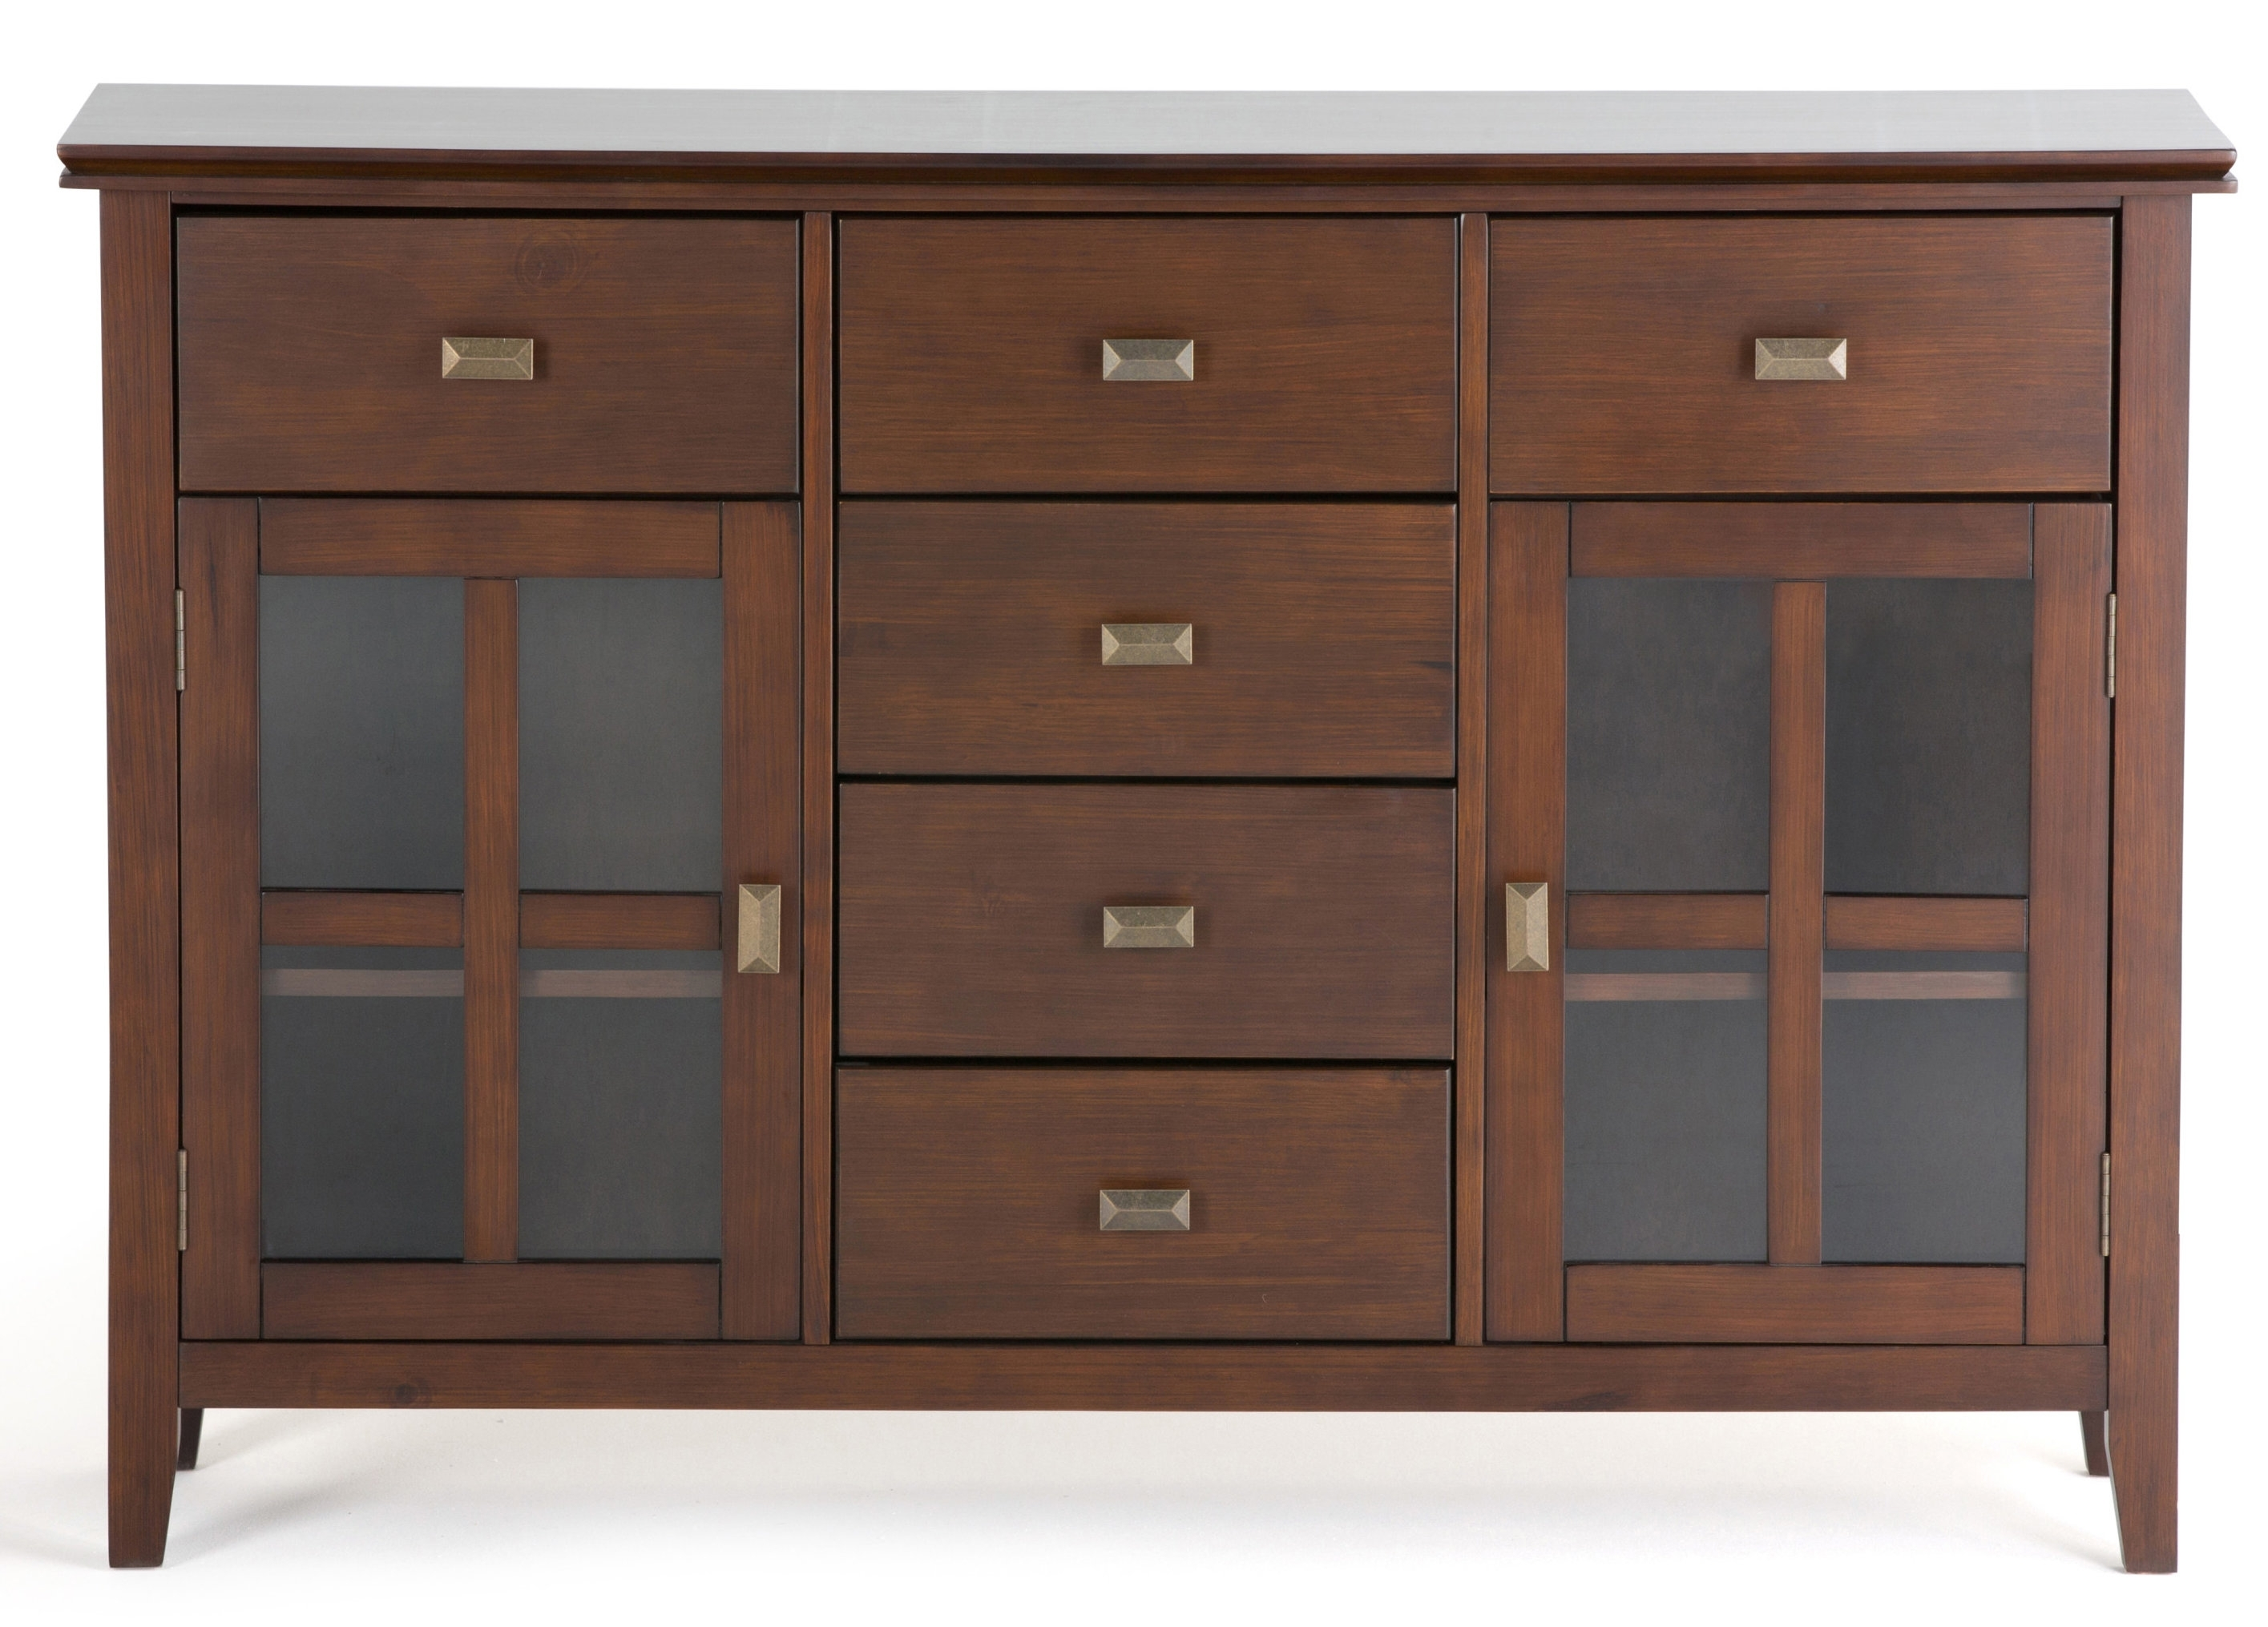 Extra Large Sideboards | Wayfair For Most Recent Girard 4 Door Sideboards (View 6 of 20)